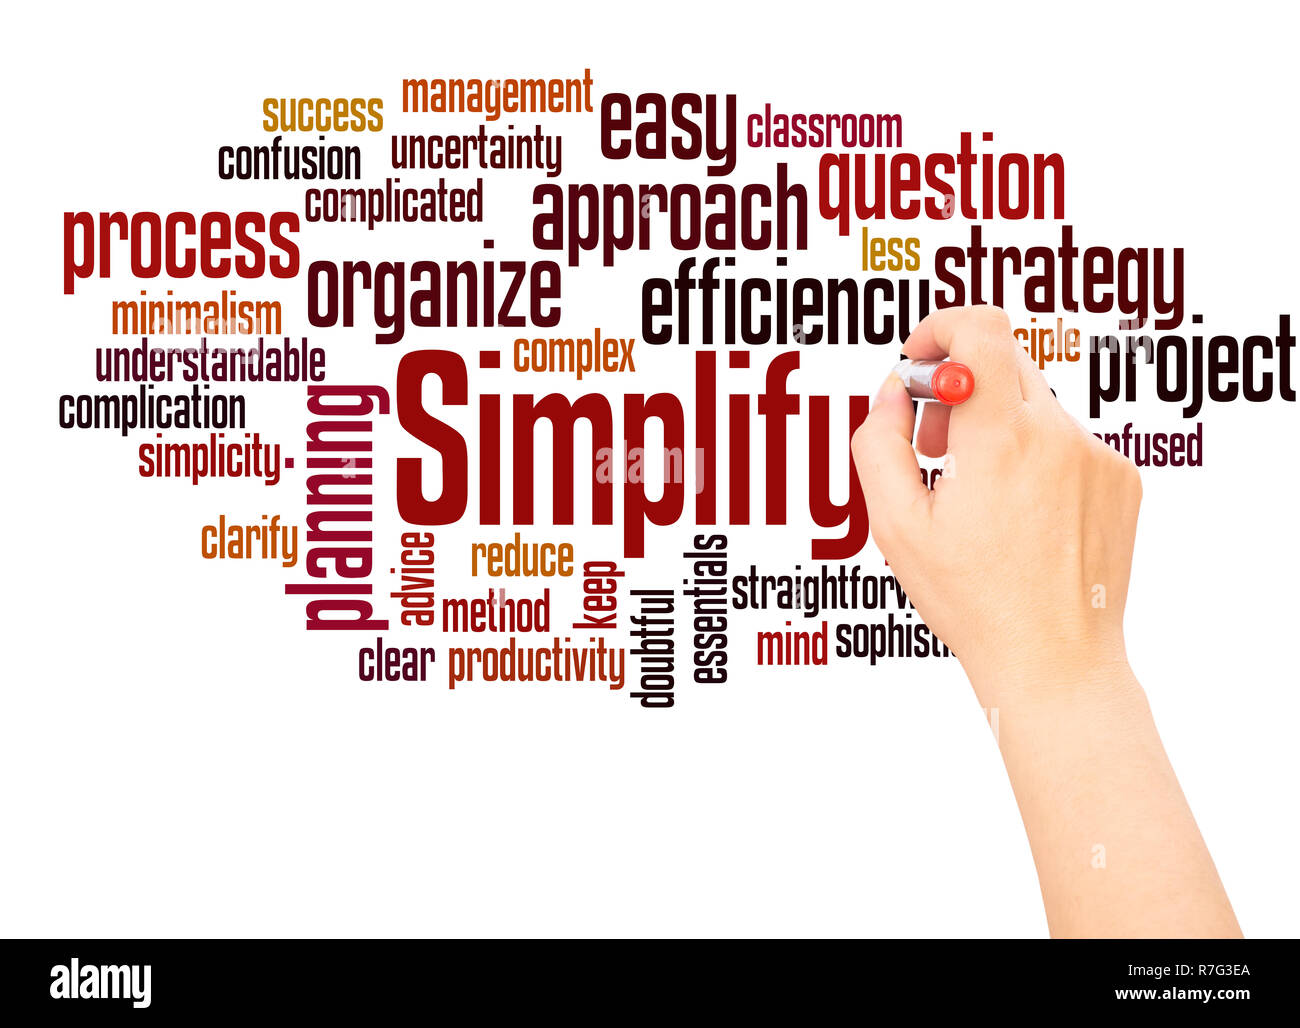 Simplify word cloud hand writing concept on white background. - Stock Image